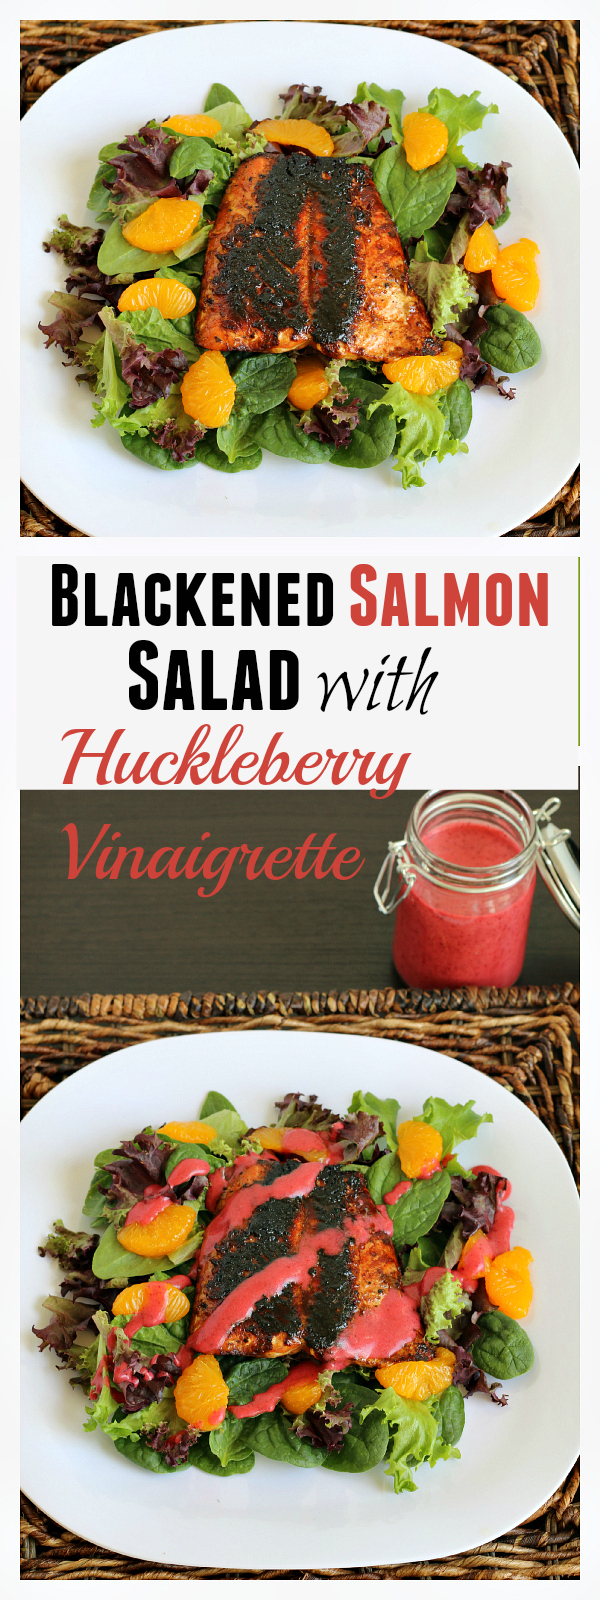 Blackened Salmon Salad with Huckleberry Vinaigrette - Easy, gluten-free dinner that the whole family loved. 45 minutes from start to finish!